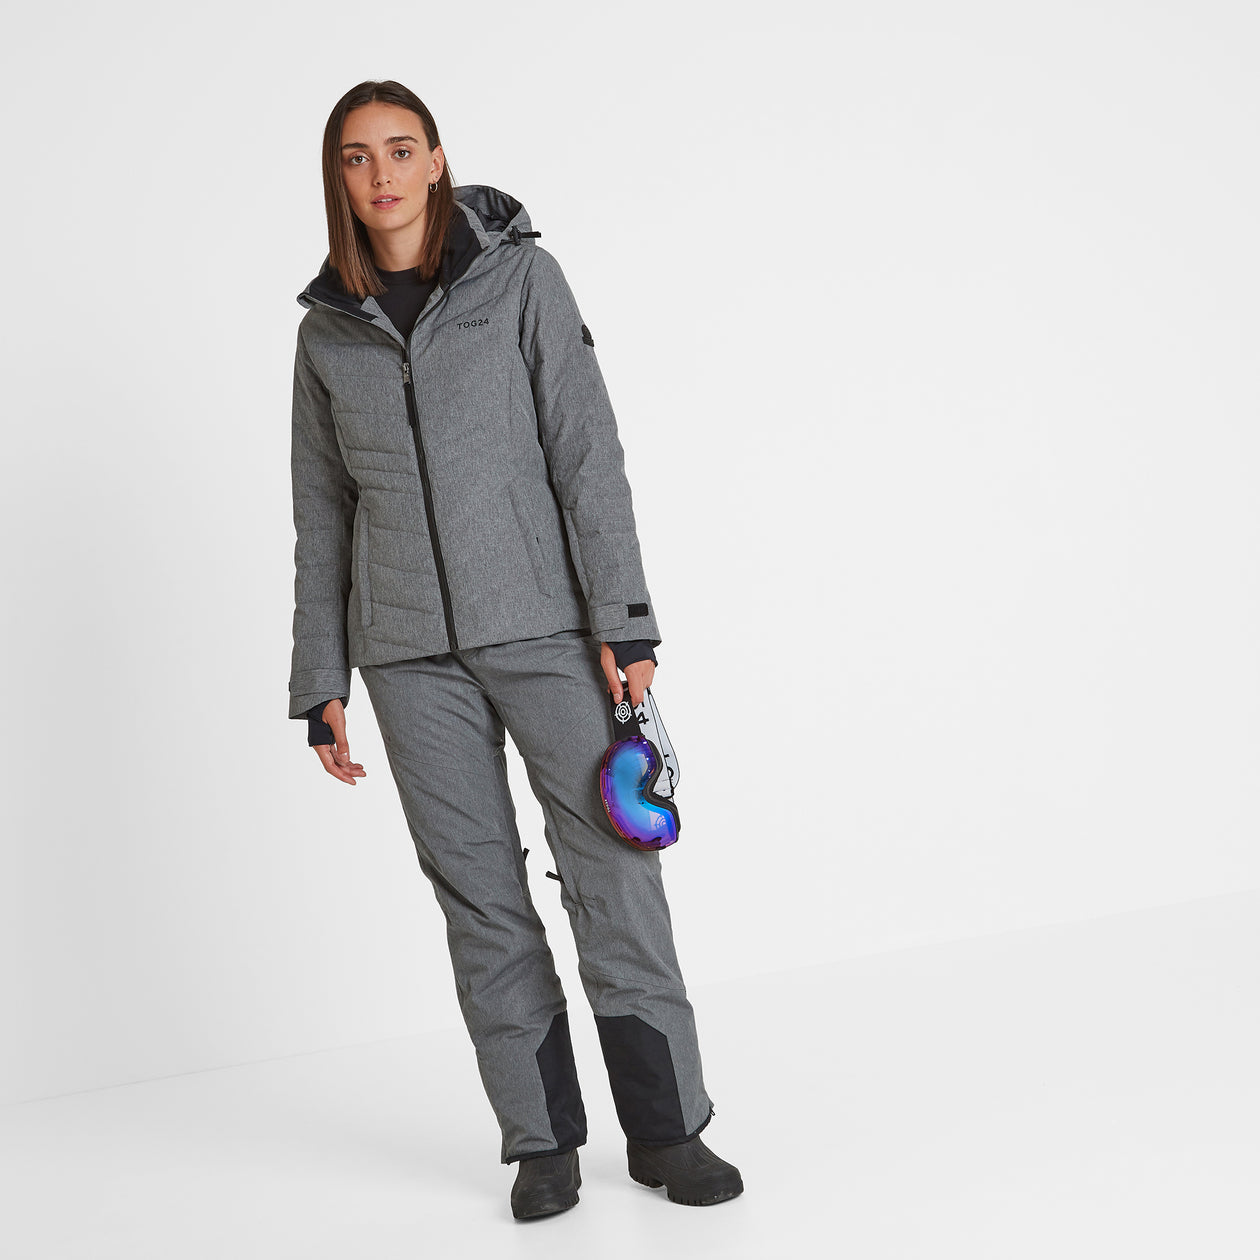 Shaw Womens Down Ski Jacket - Grey Marl image 4